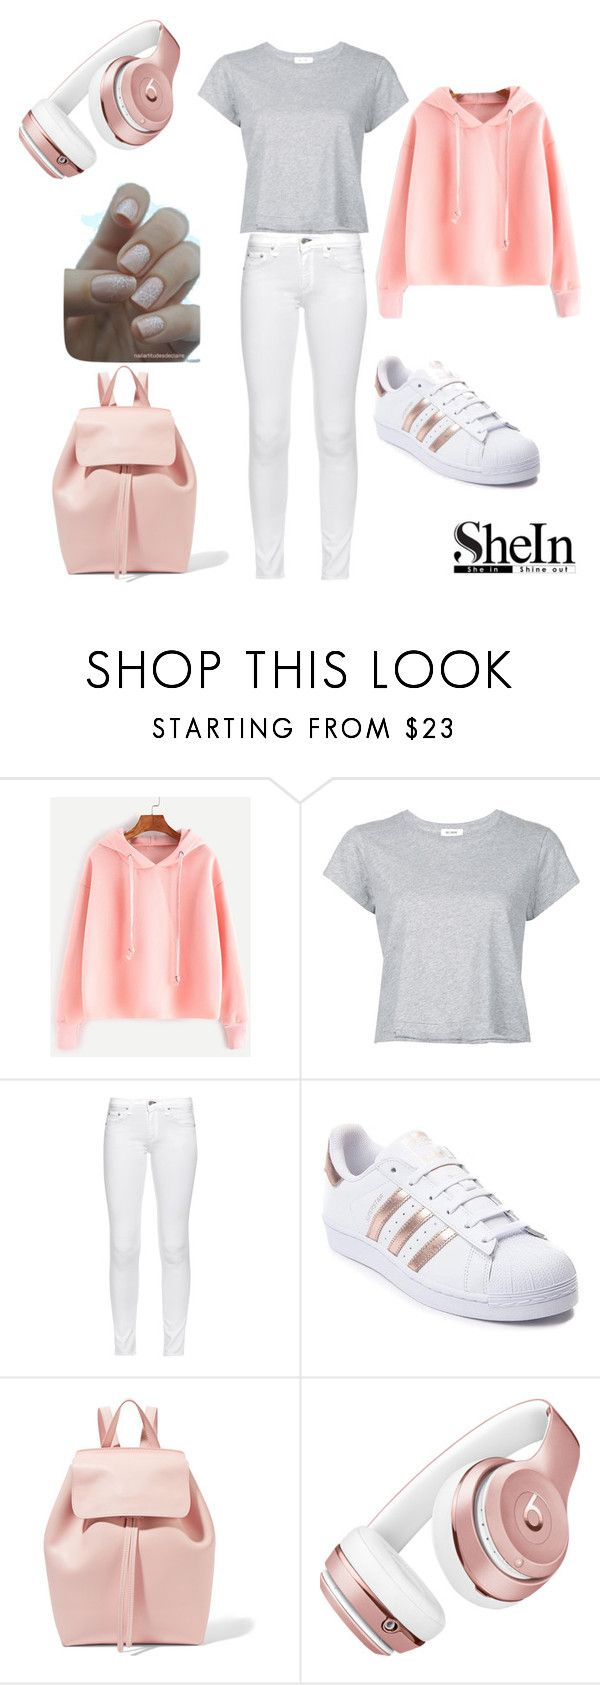 """Pink hoodie"" by fashion-queen25 ❤ liked on Polyvore featuring WithChic, RE/DONE, rag & bone, adidas, Mansur Gavriel and Beats by Dr. Dre"